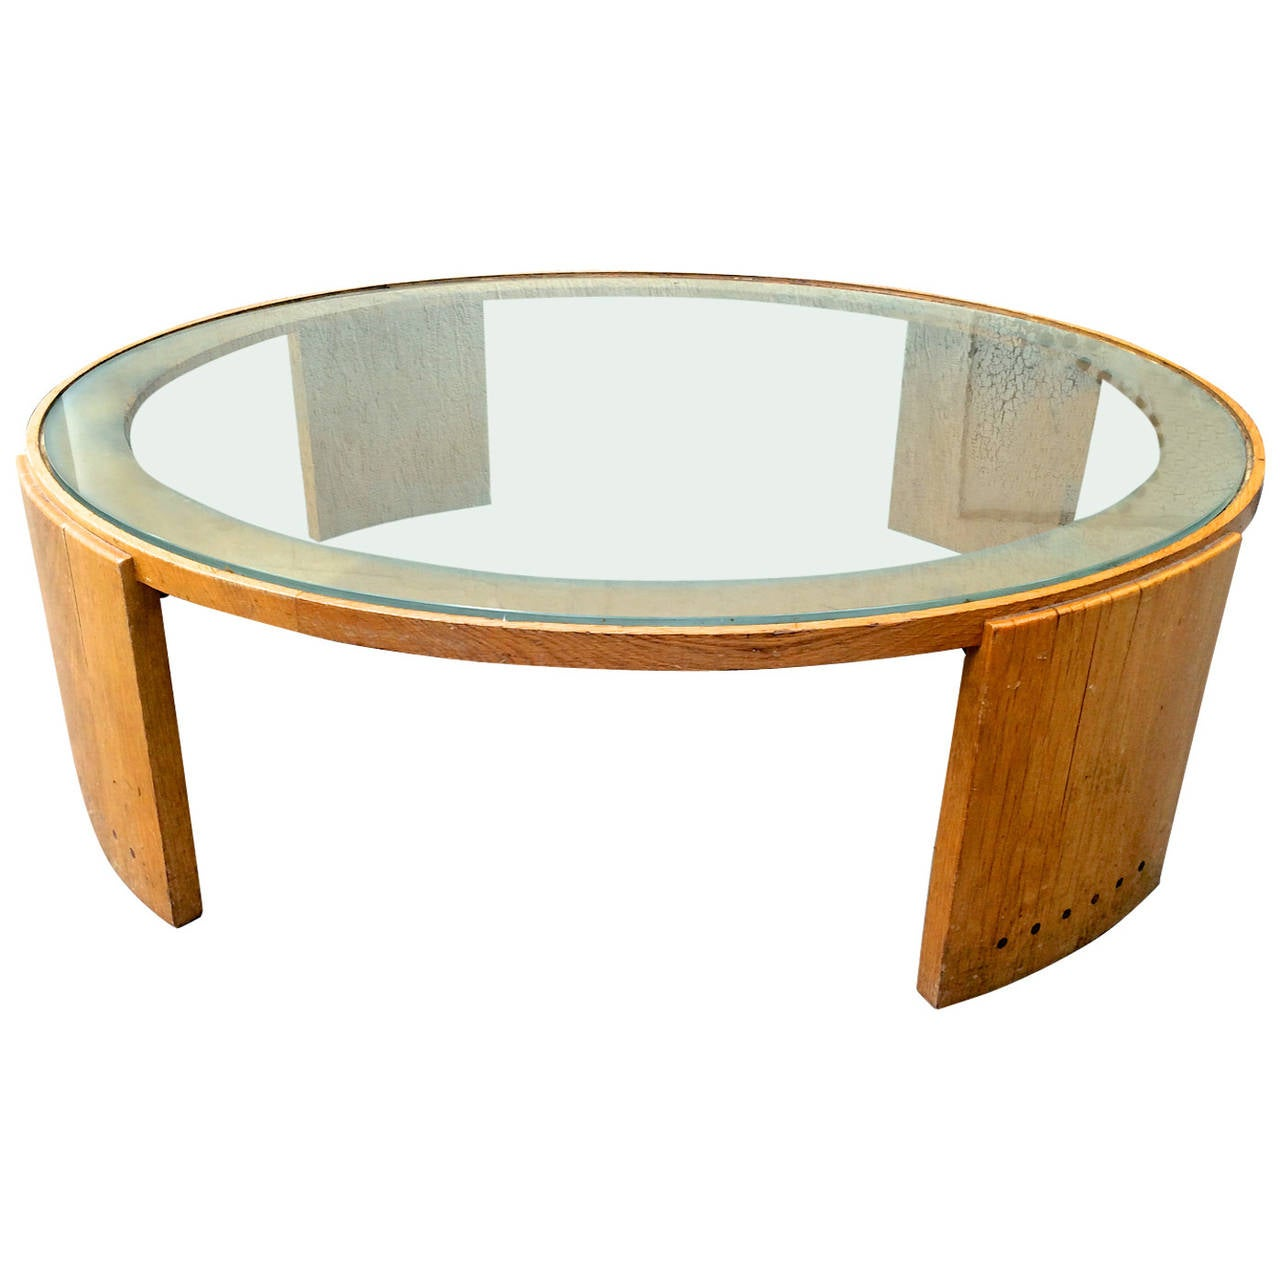 Jacques adnet very large round coffee table in oak and for Large glass coffee table